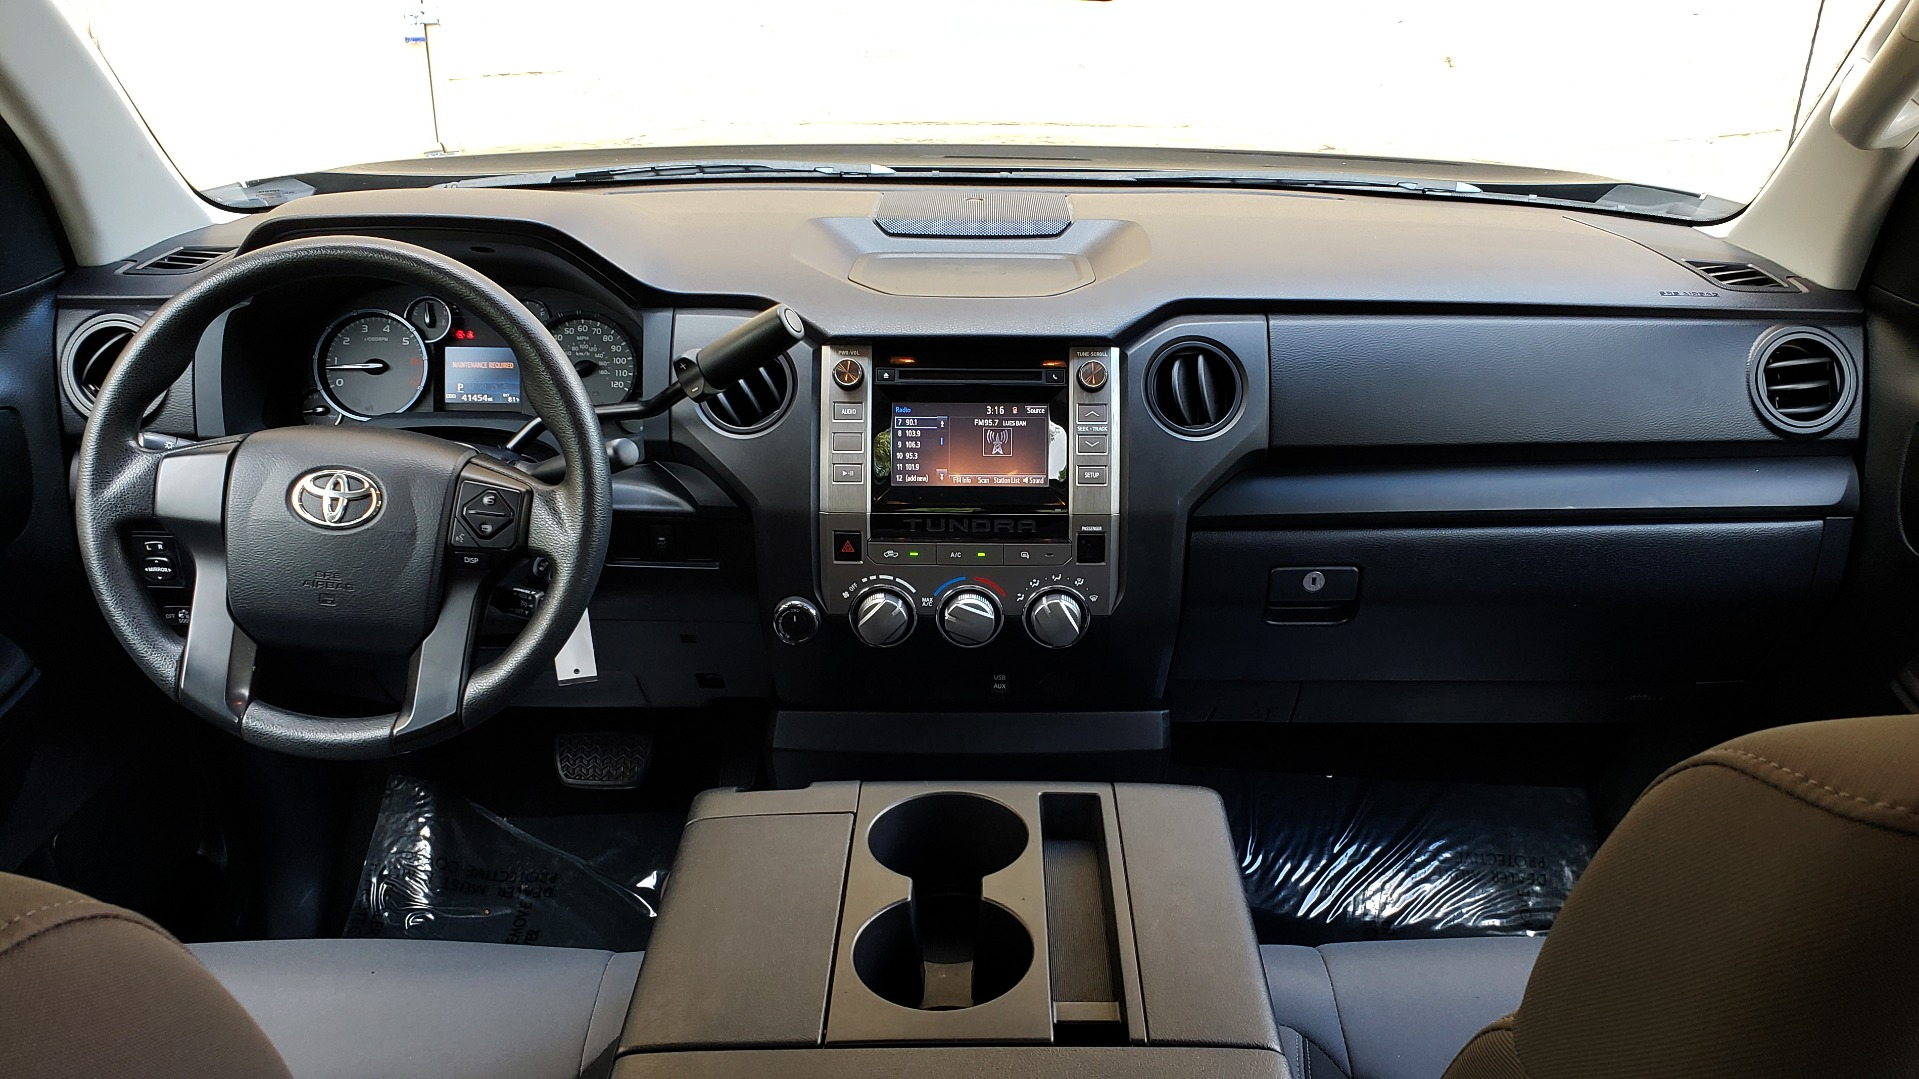 Used 2017 Toyota TUNDRA 4WD SR DOUBLECAB / 4WD / 6.5' BED / V8 / AUTO / REARVIEW for sale Sold at Formula Imports in Charlotte NC 28227 71